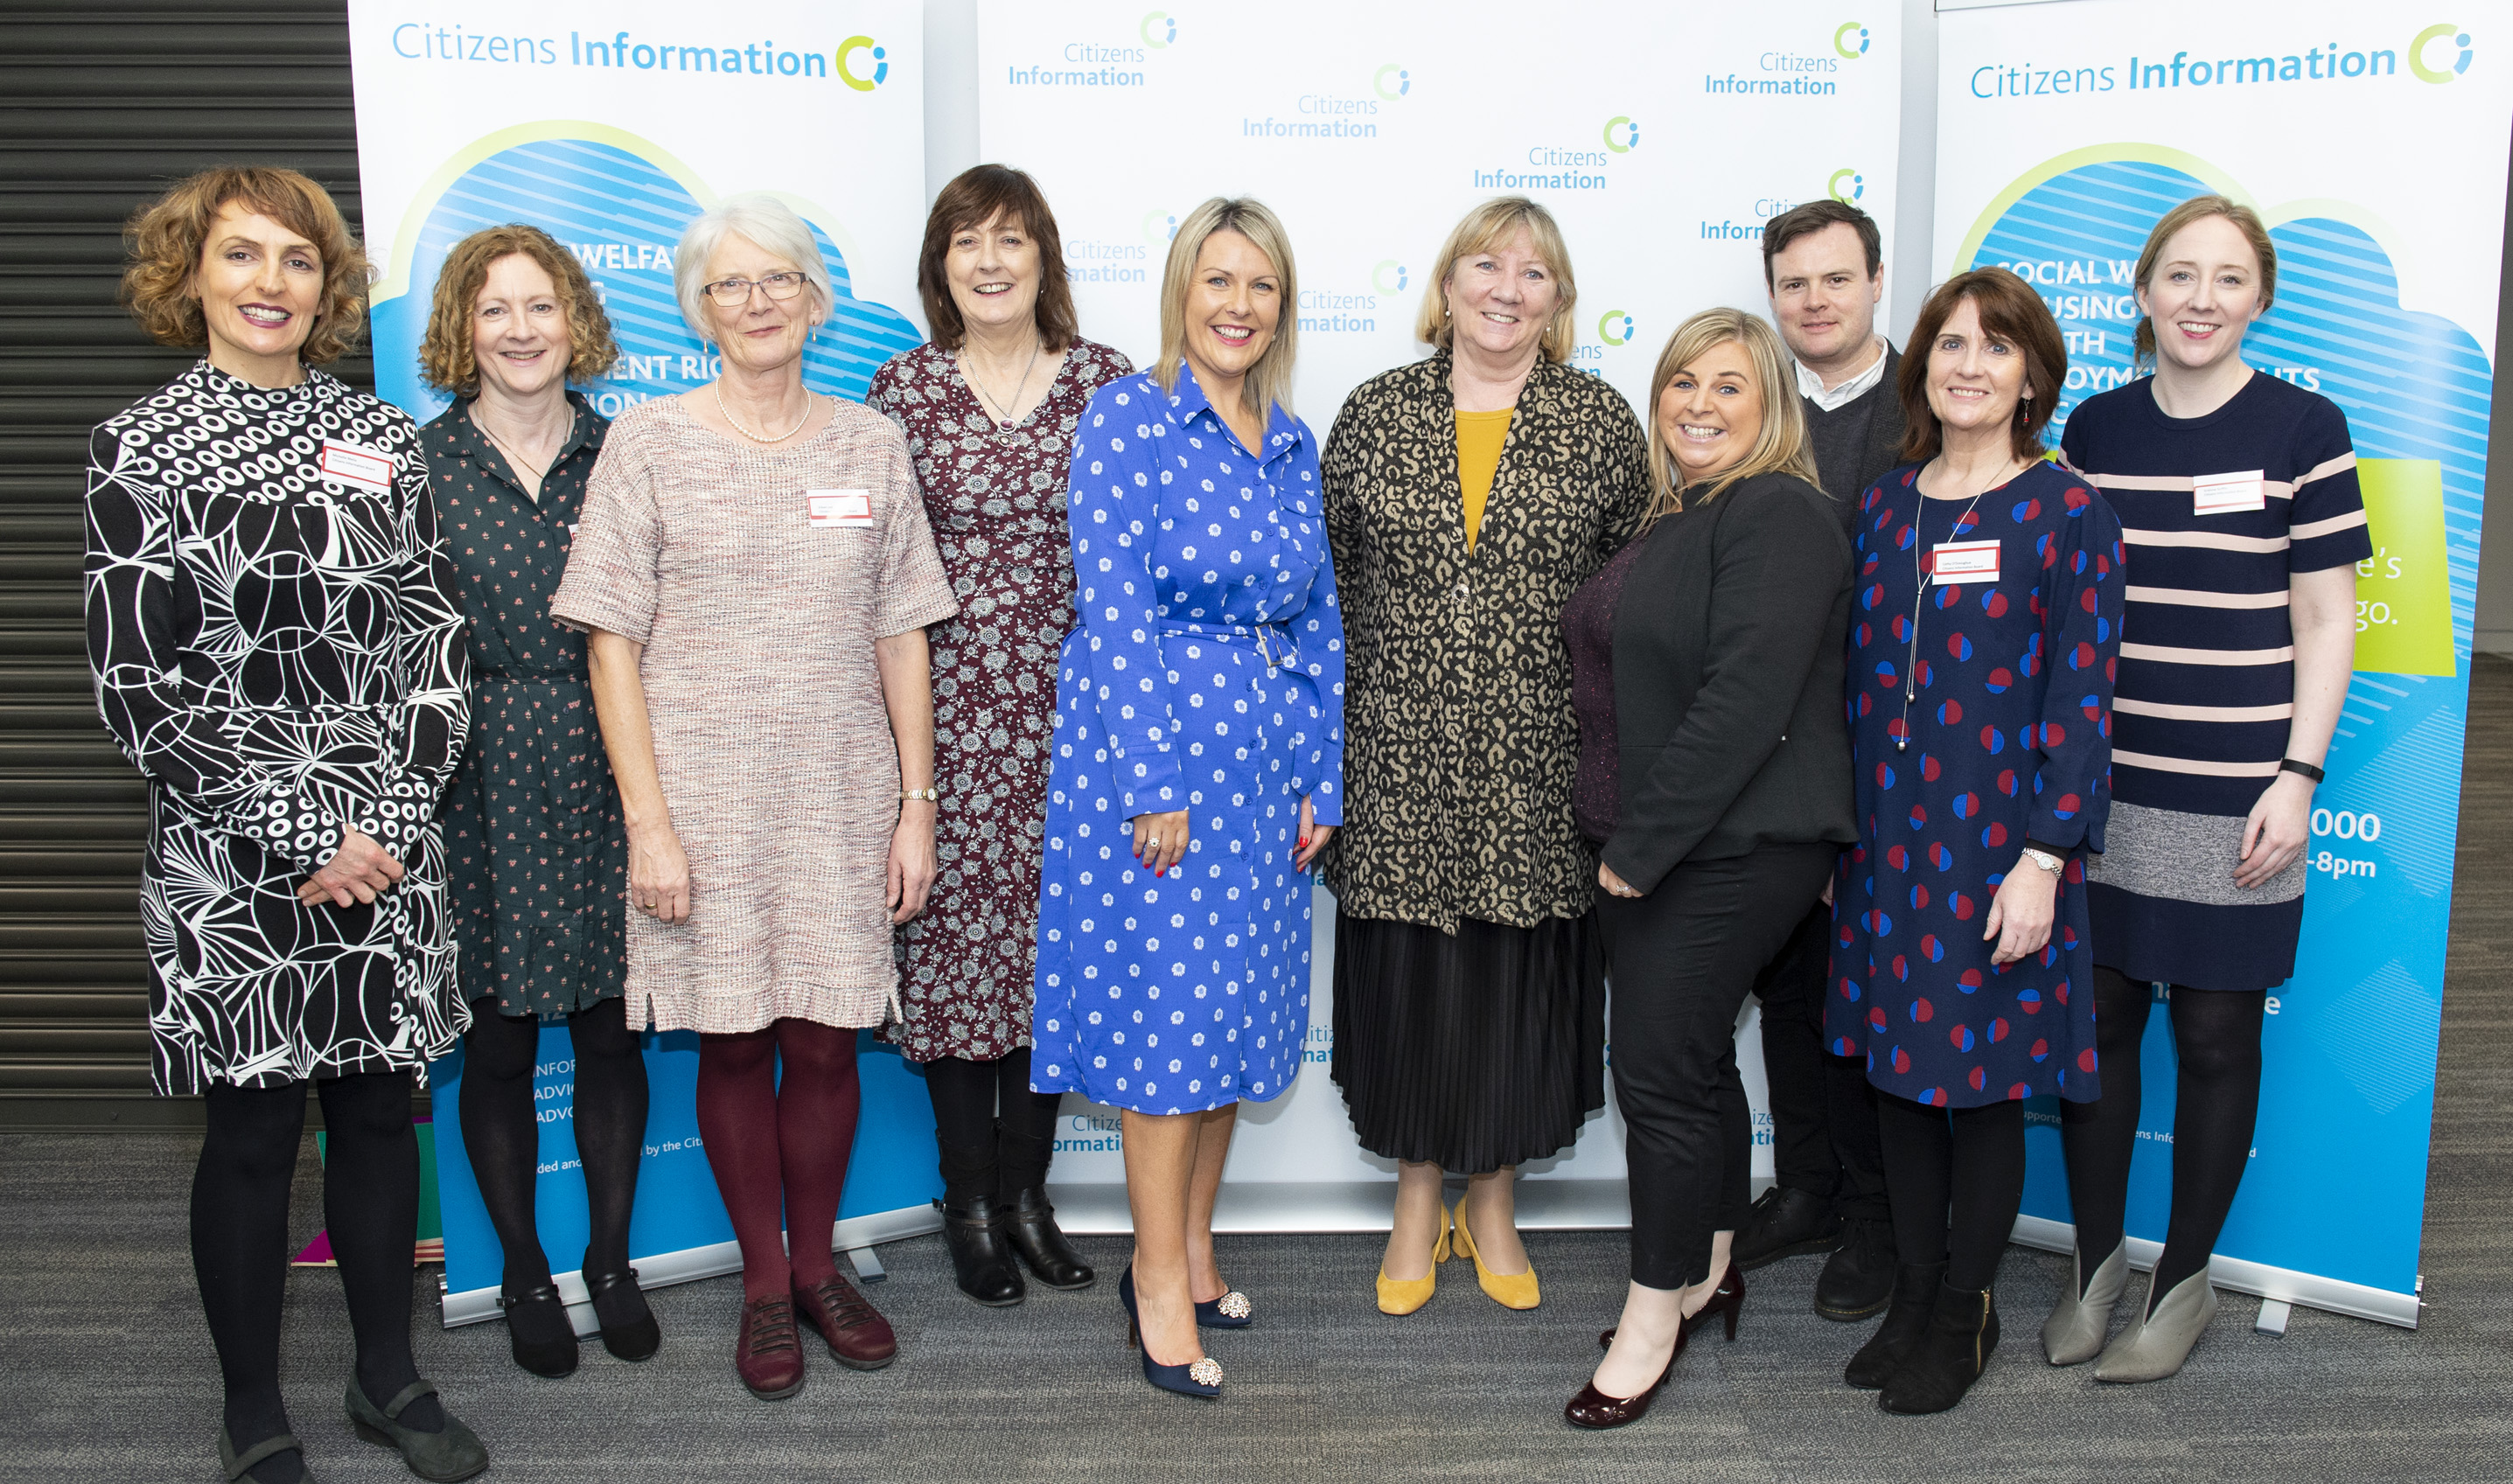 CIB event organisers pictured from left: Michelle Melia,                                    Claire Ruddy, Eileen Lee, Mary Kelliher, Sara McSweeney,                                    Angela Black, Chief Executive, Sharon Conroy, Michael Owens, Cathy O'Donoghue and Grainne Griffin.